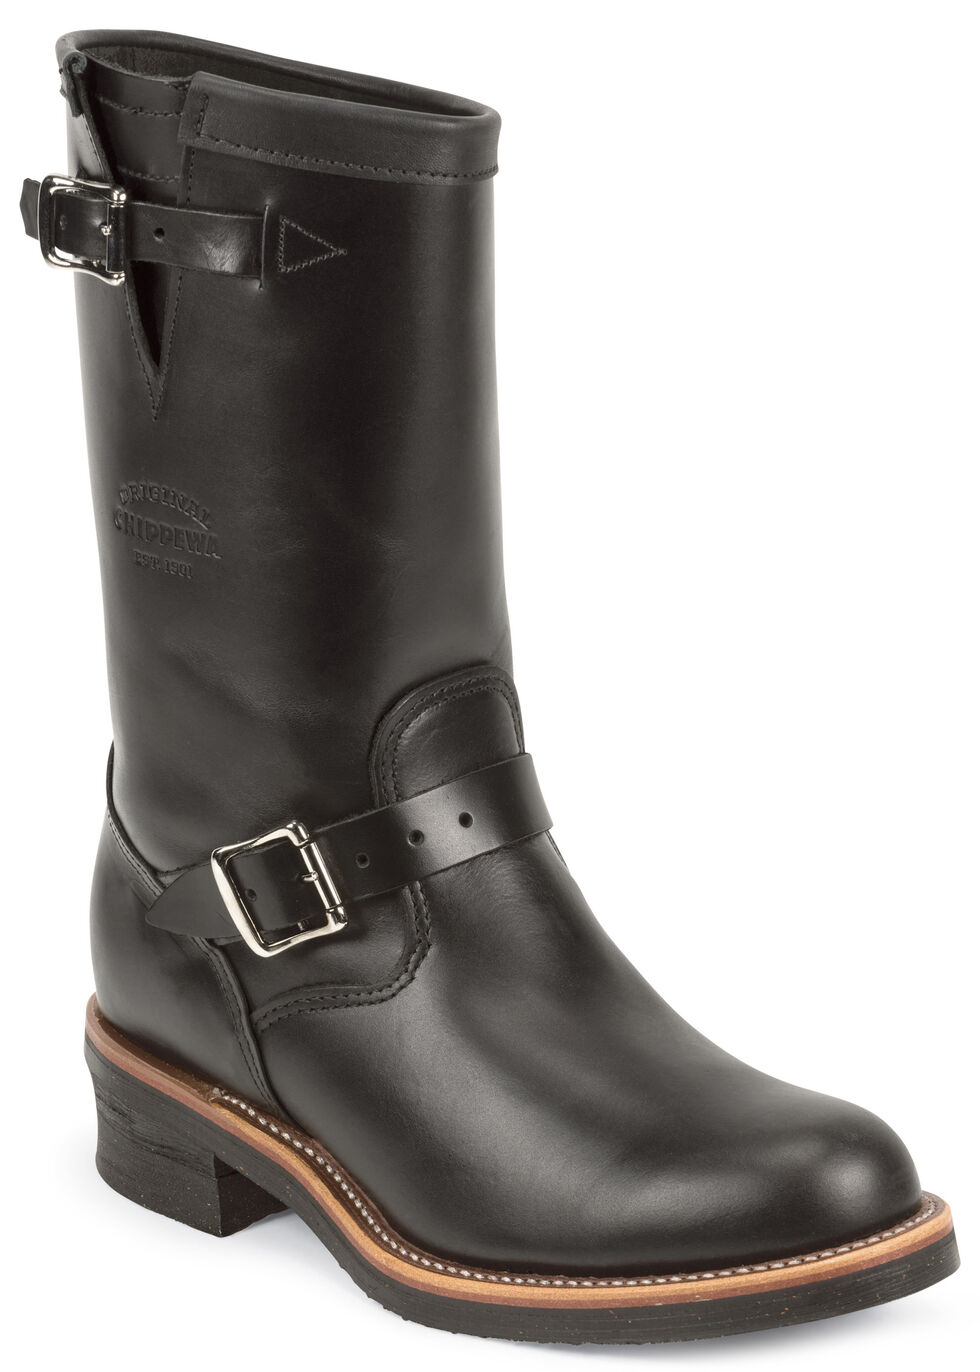 Chippewa Men's Whirlwind Black Engineer Boots - Round Toe, Black, hi-res